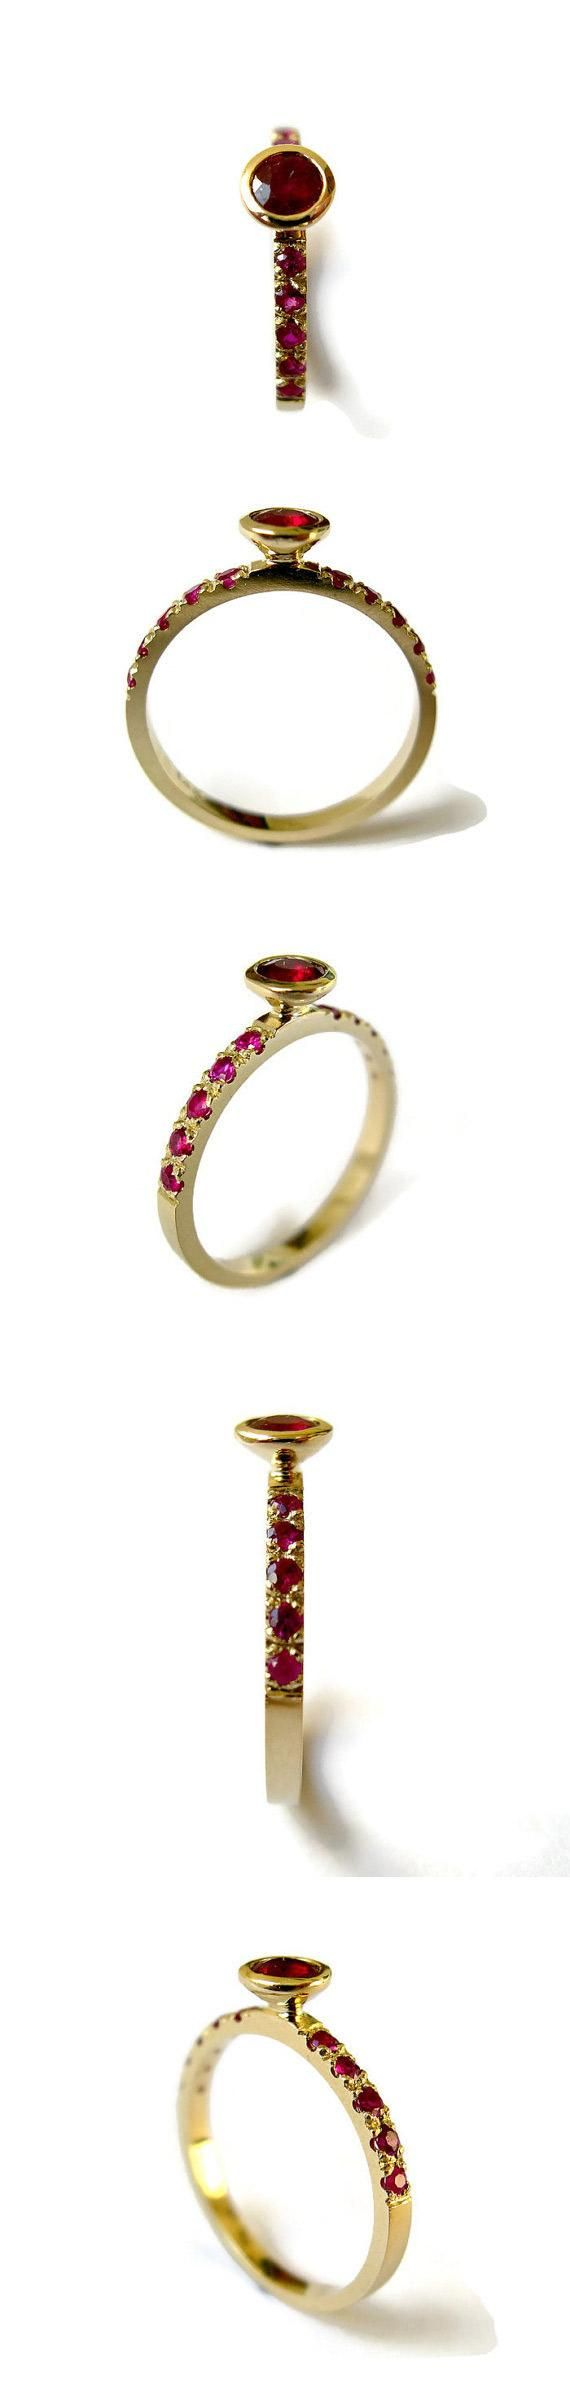 Mariage - Unique Ruby Ring, Yellow Gold Ring With Rubies, Delicate Engagement Ring, 14k Gold Ring And Ruby, For Woman